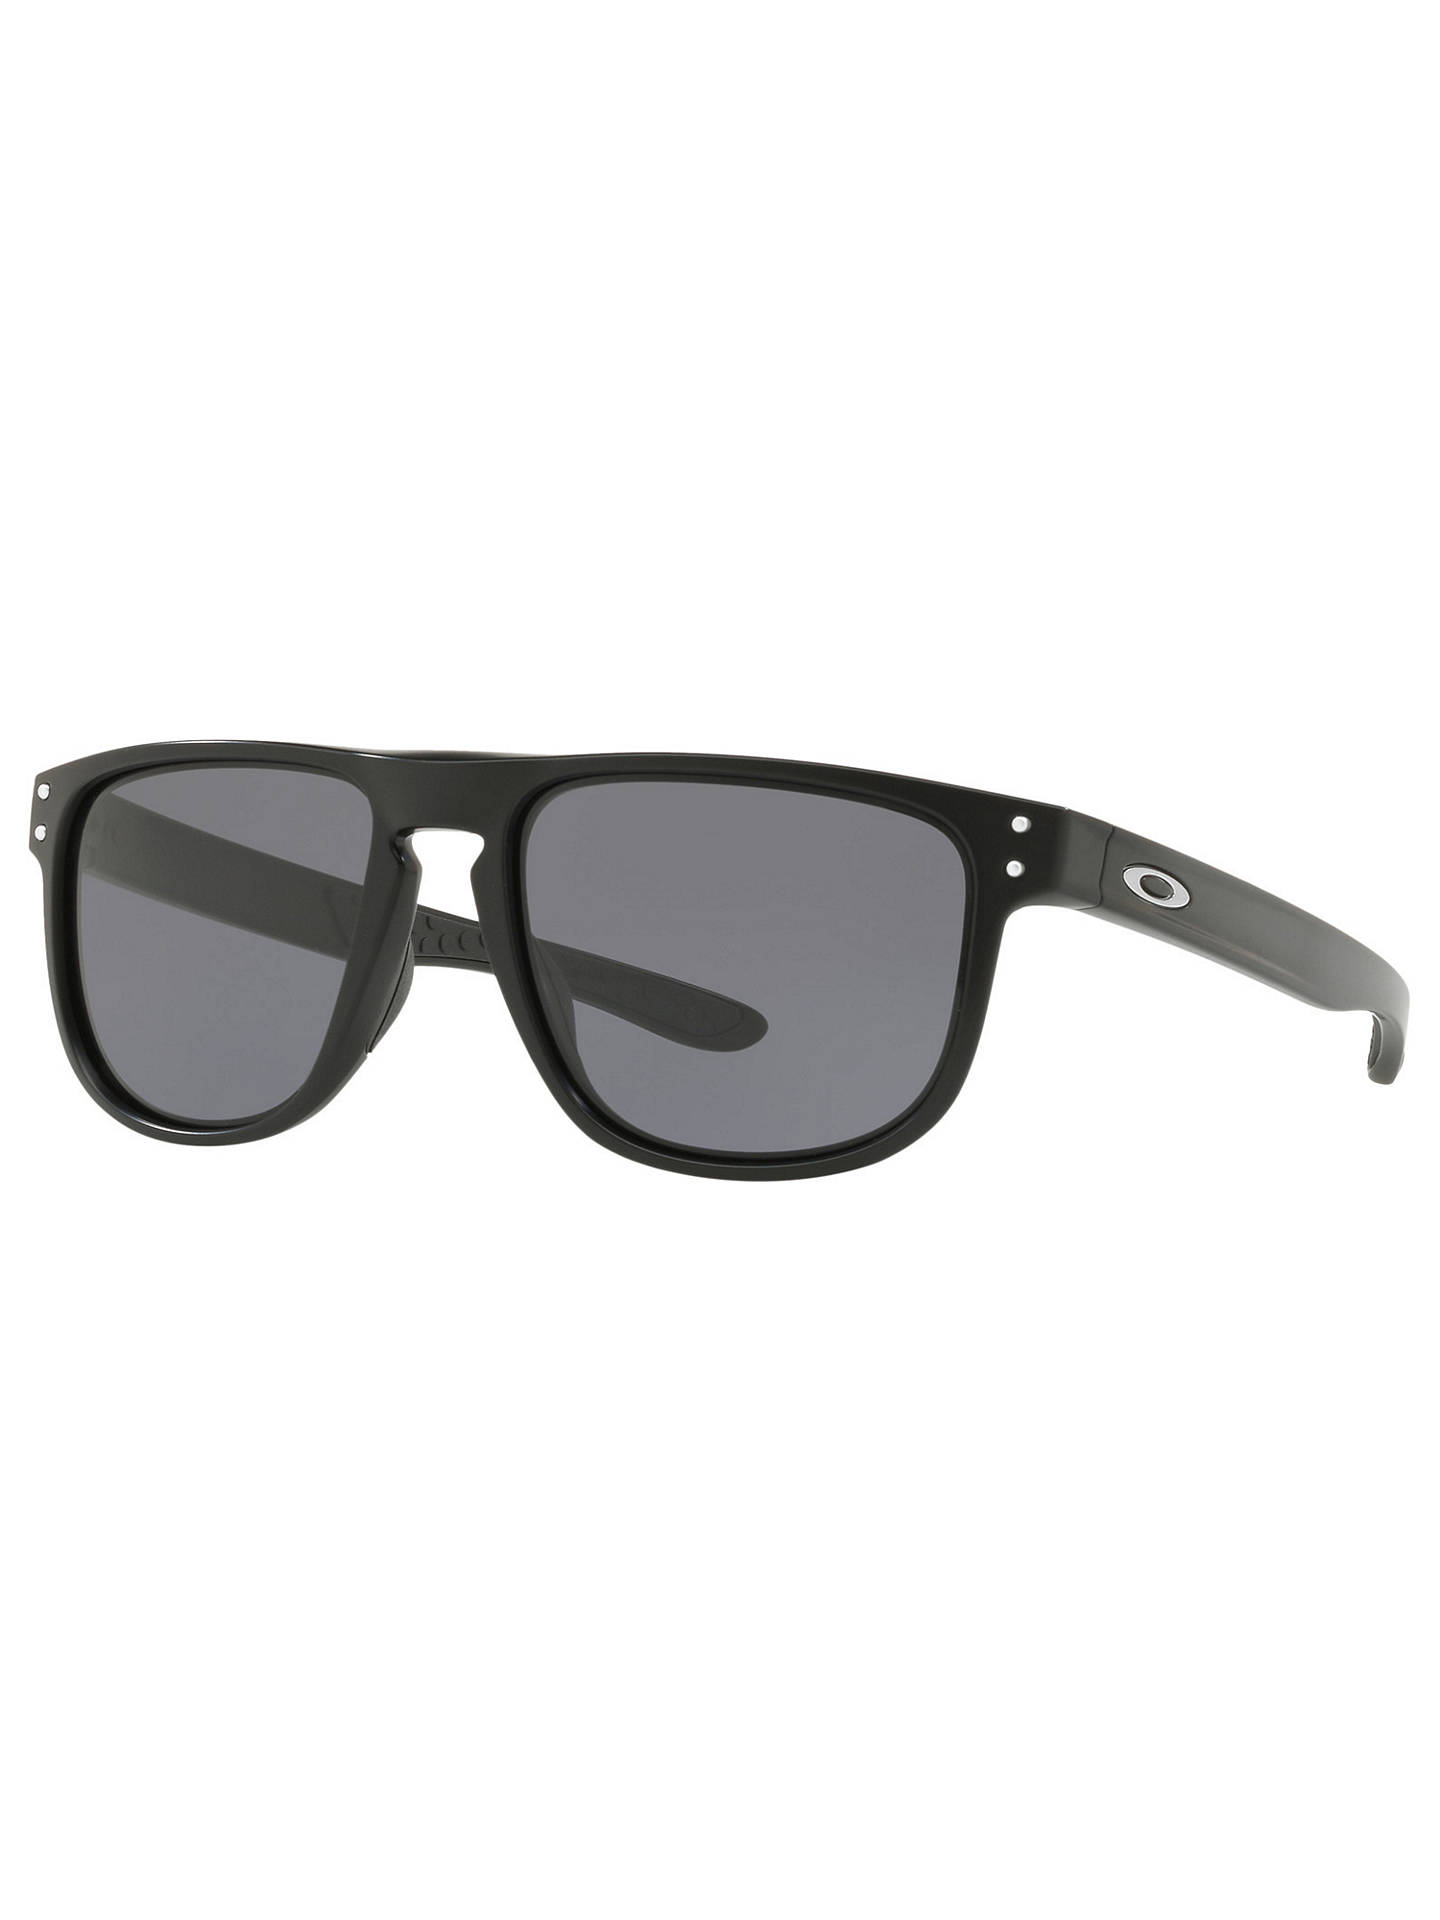 8be7867529 BuyOakley OO9377 Holbrook R Square Sunglasses